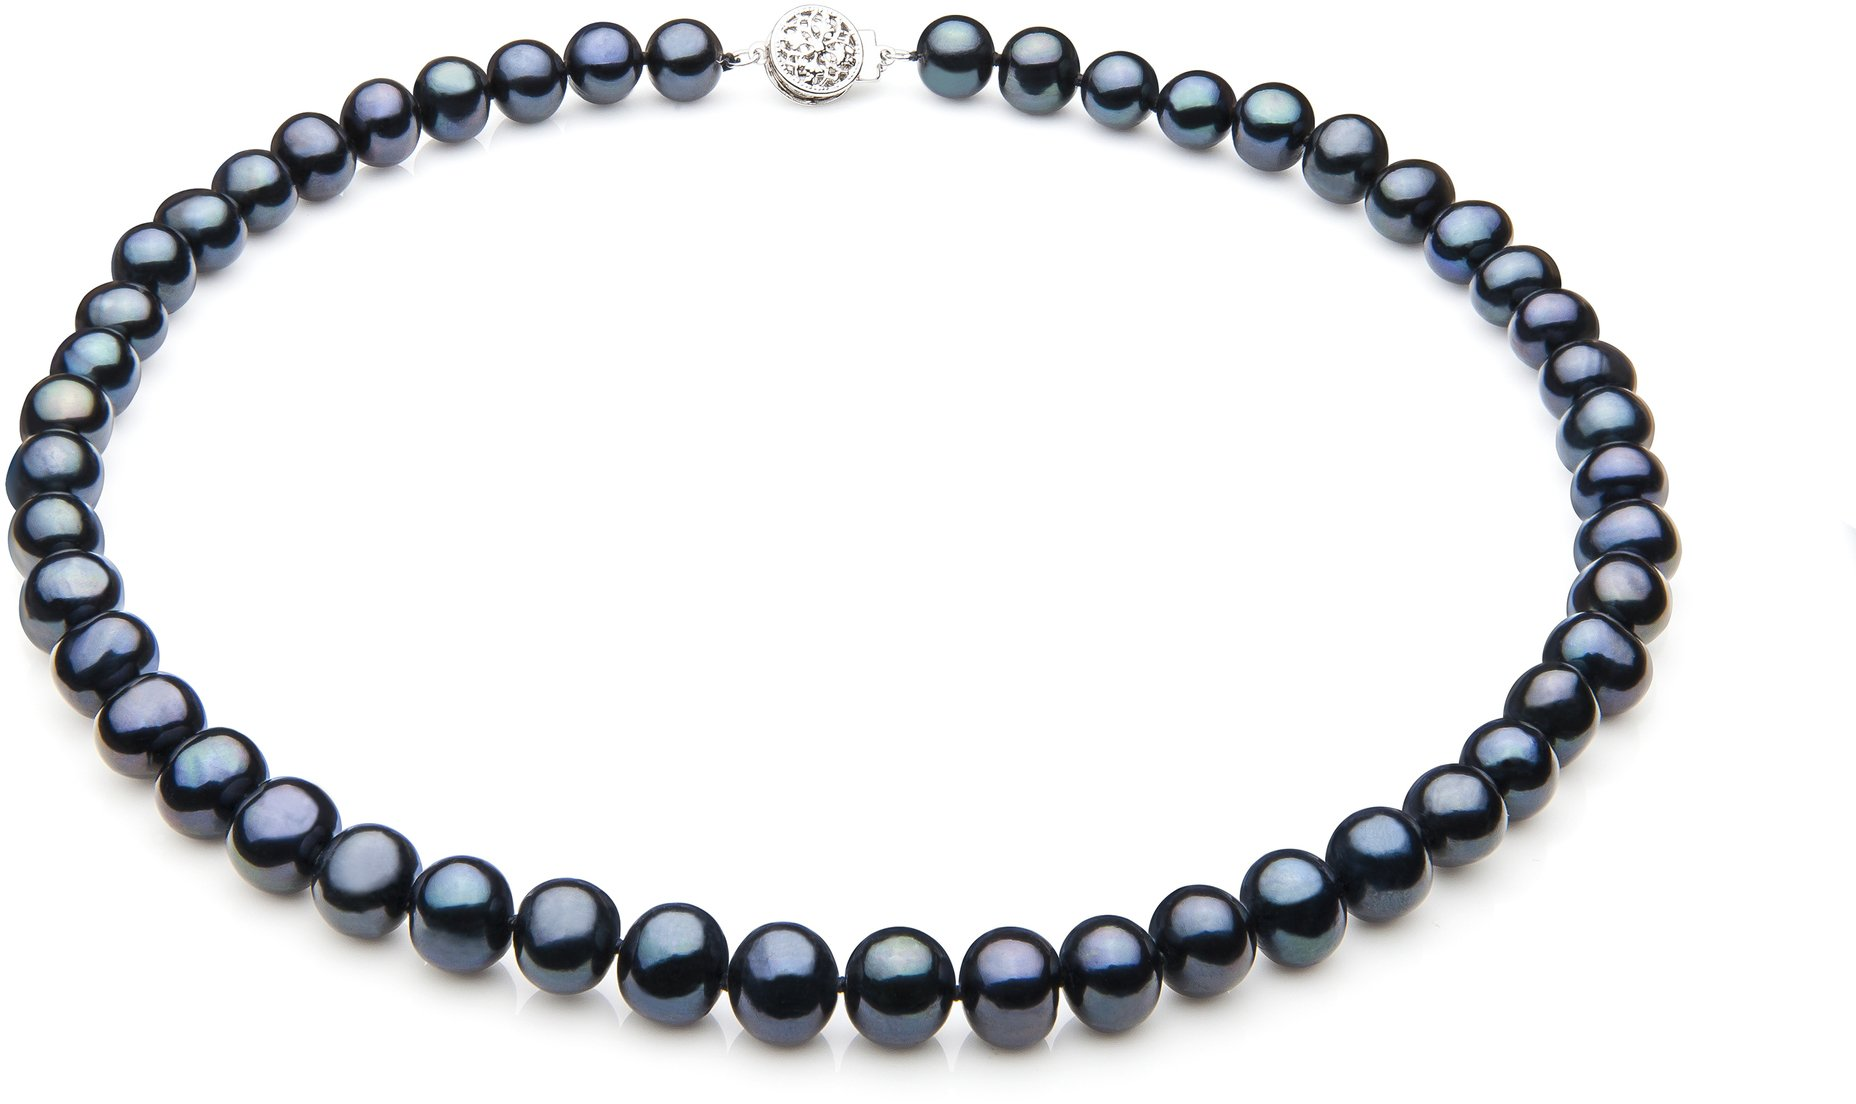 Single Black 7-8mm A Quality Freshwater 925 Sterling Silver Cultured Pearl Necklace-18 in Princess length